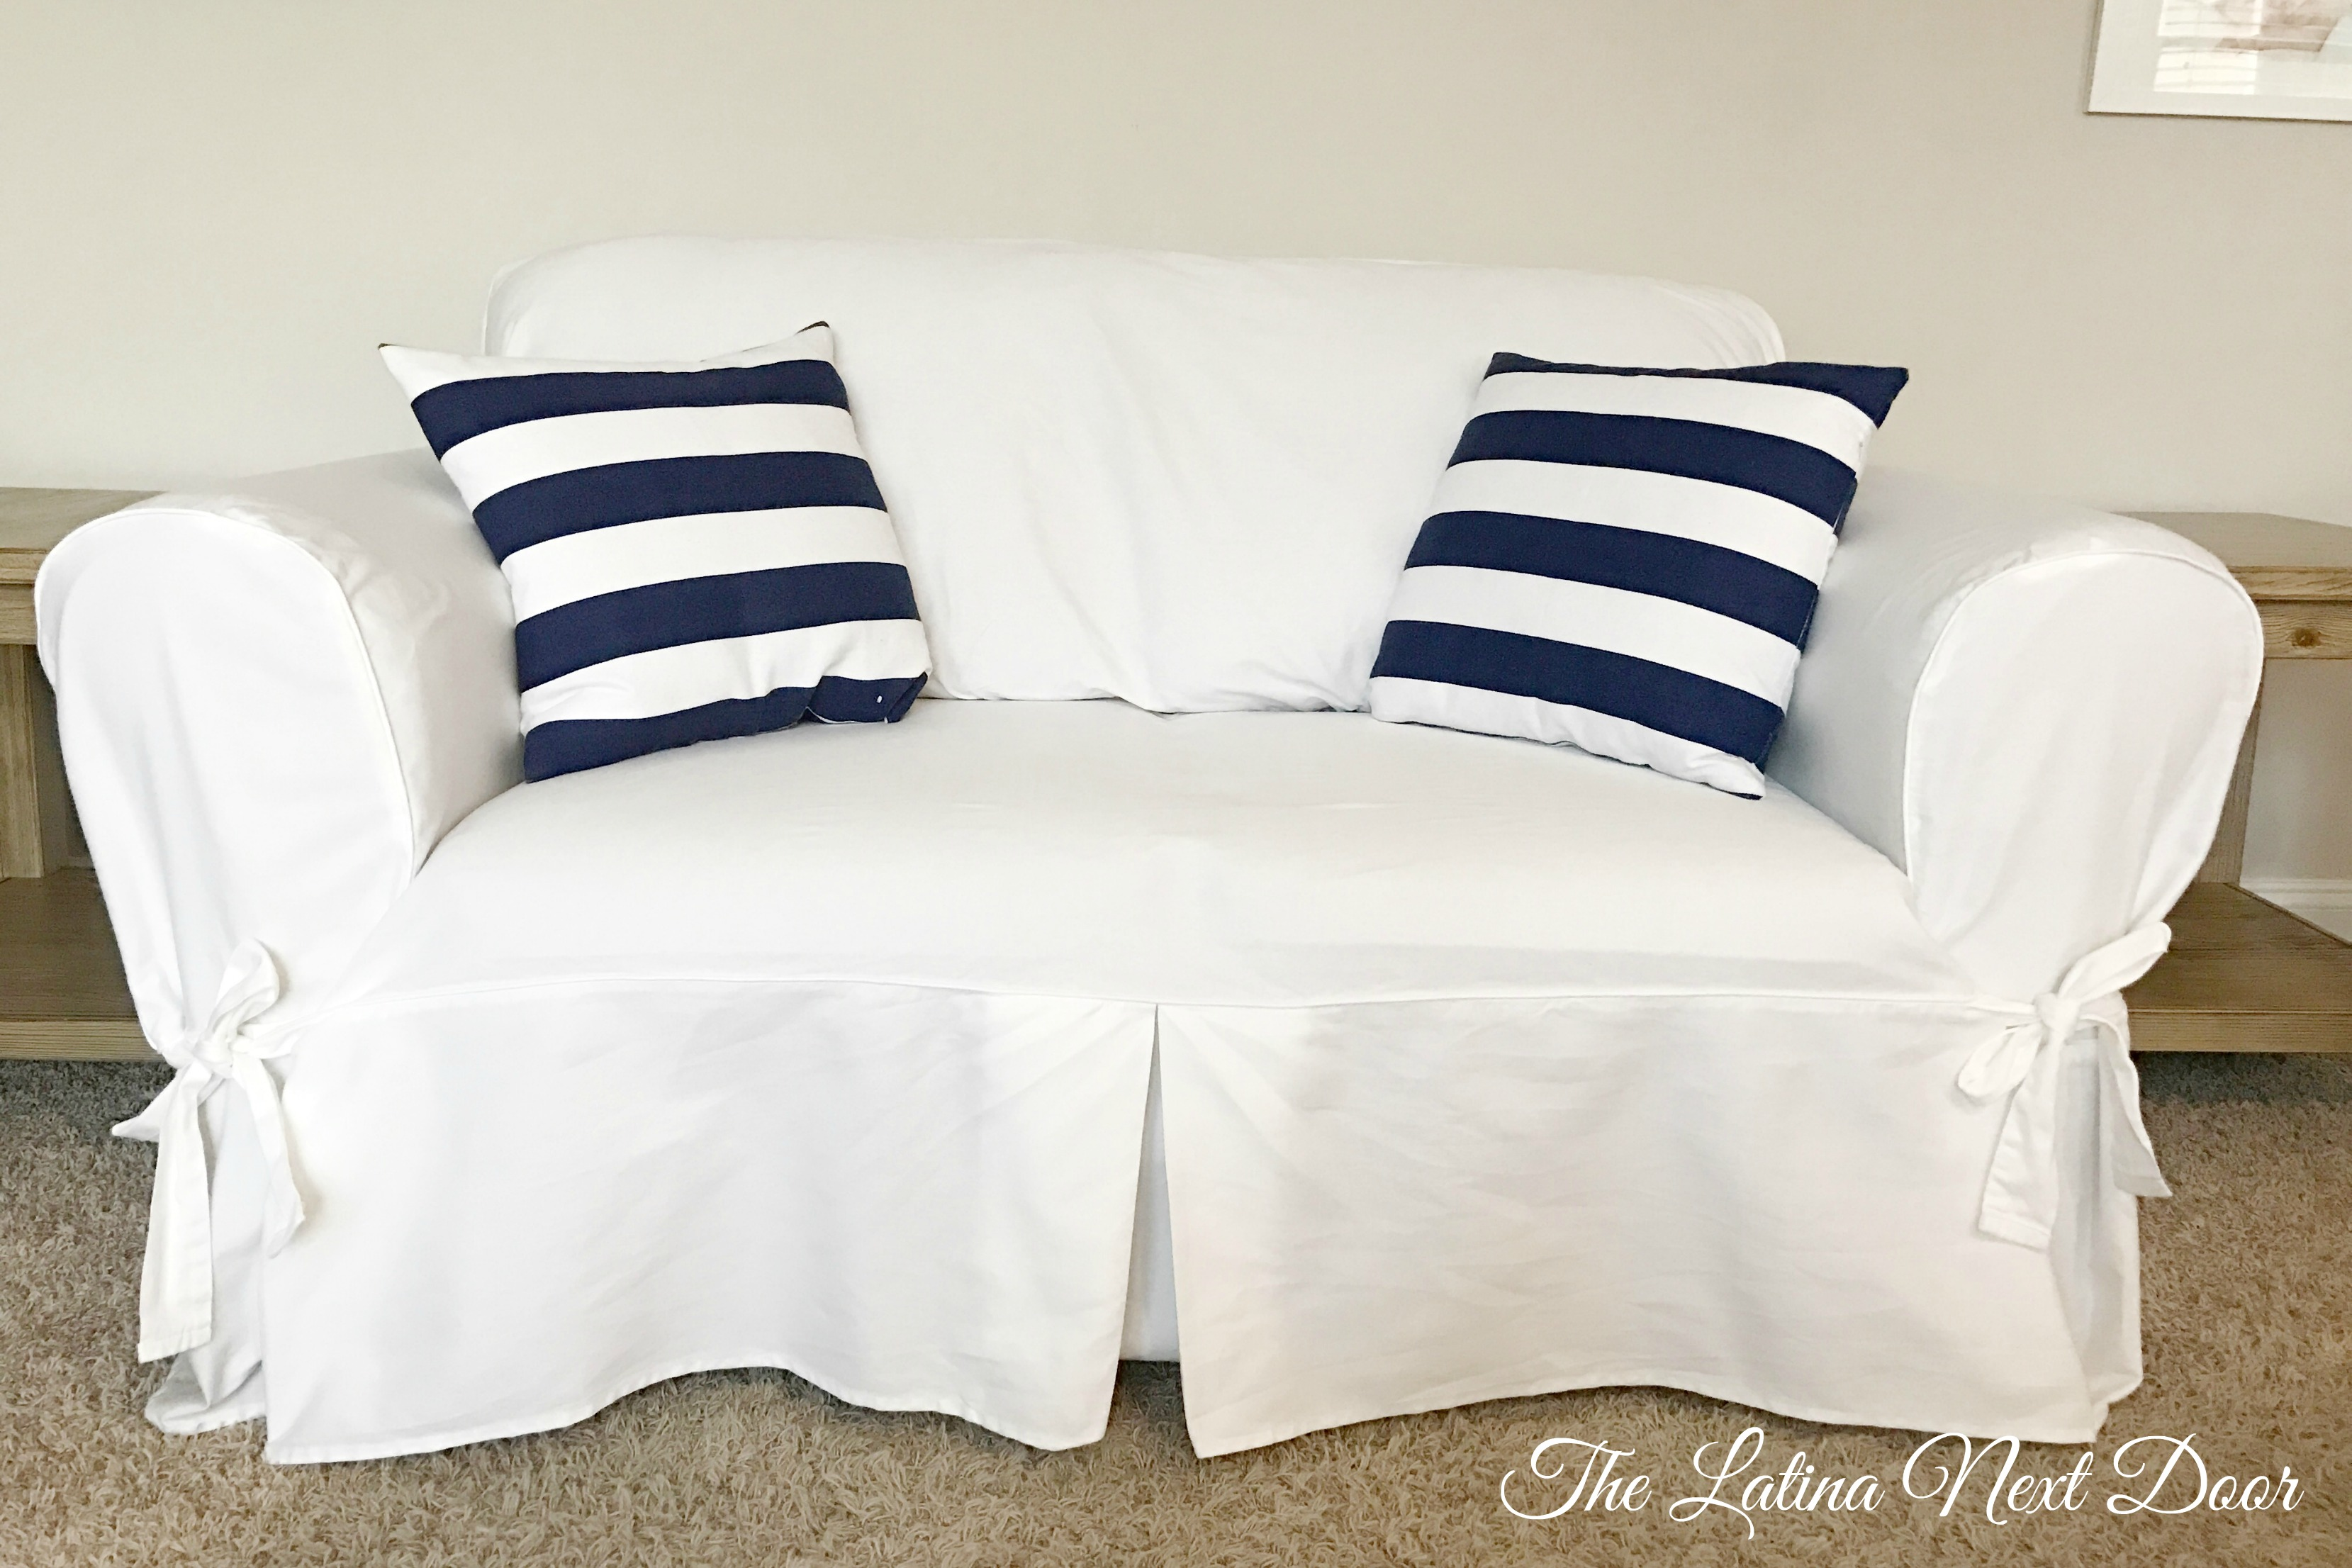 Pottery Barn White Sofa Look For Less 1 Pottery Barn White Sofa Look For Less